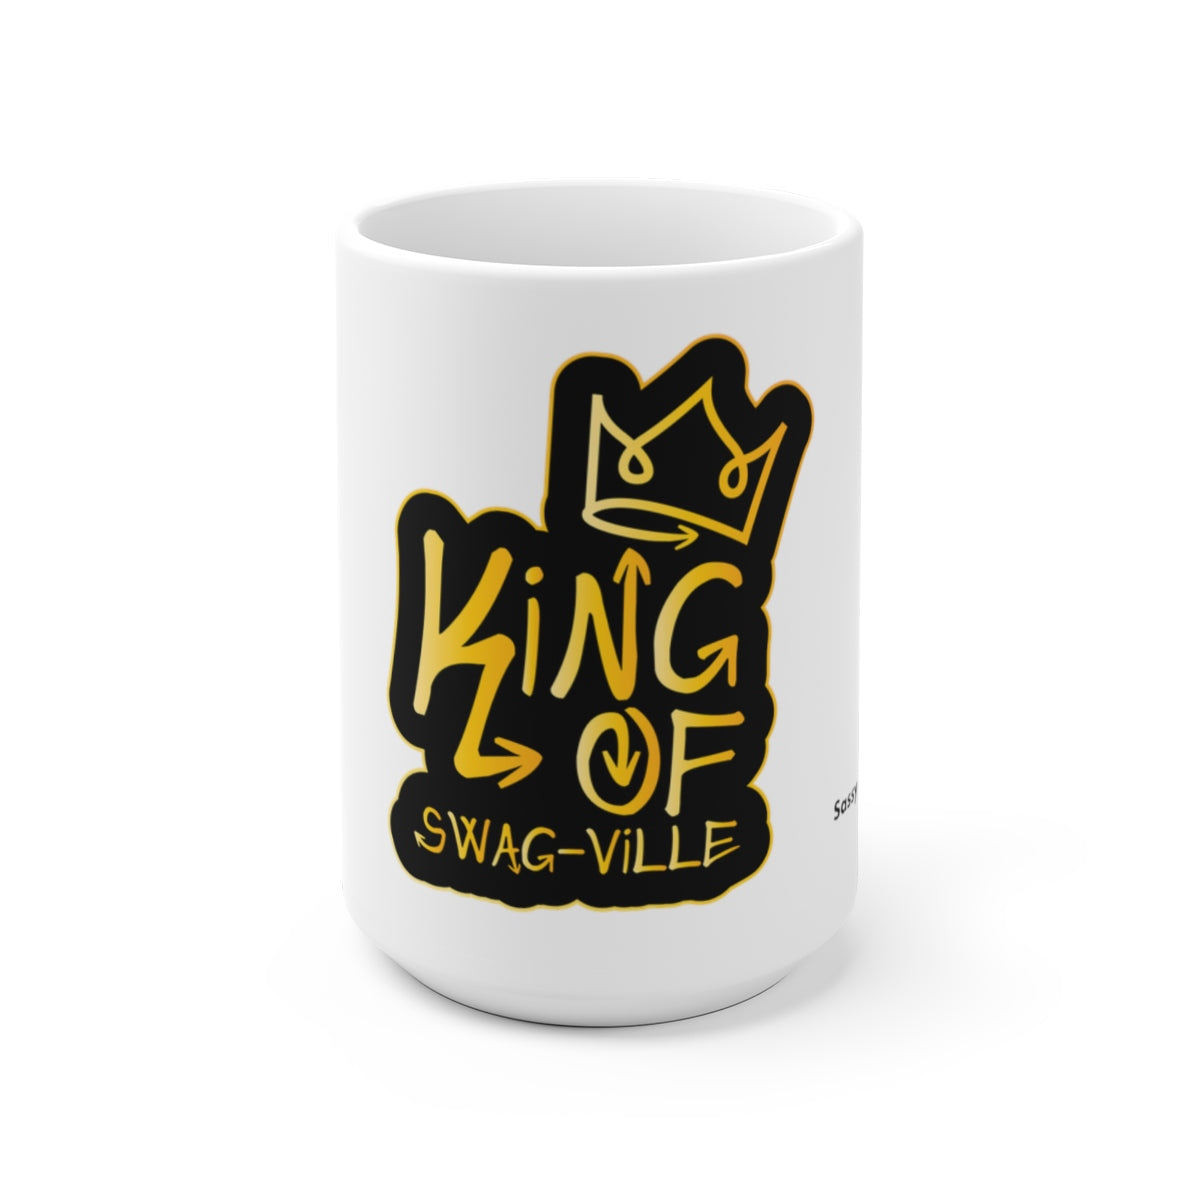 Sassy & Swag Collections - King of Swag-ville White Ceramic Mug